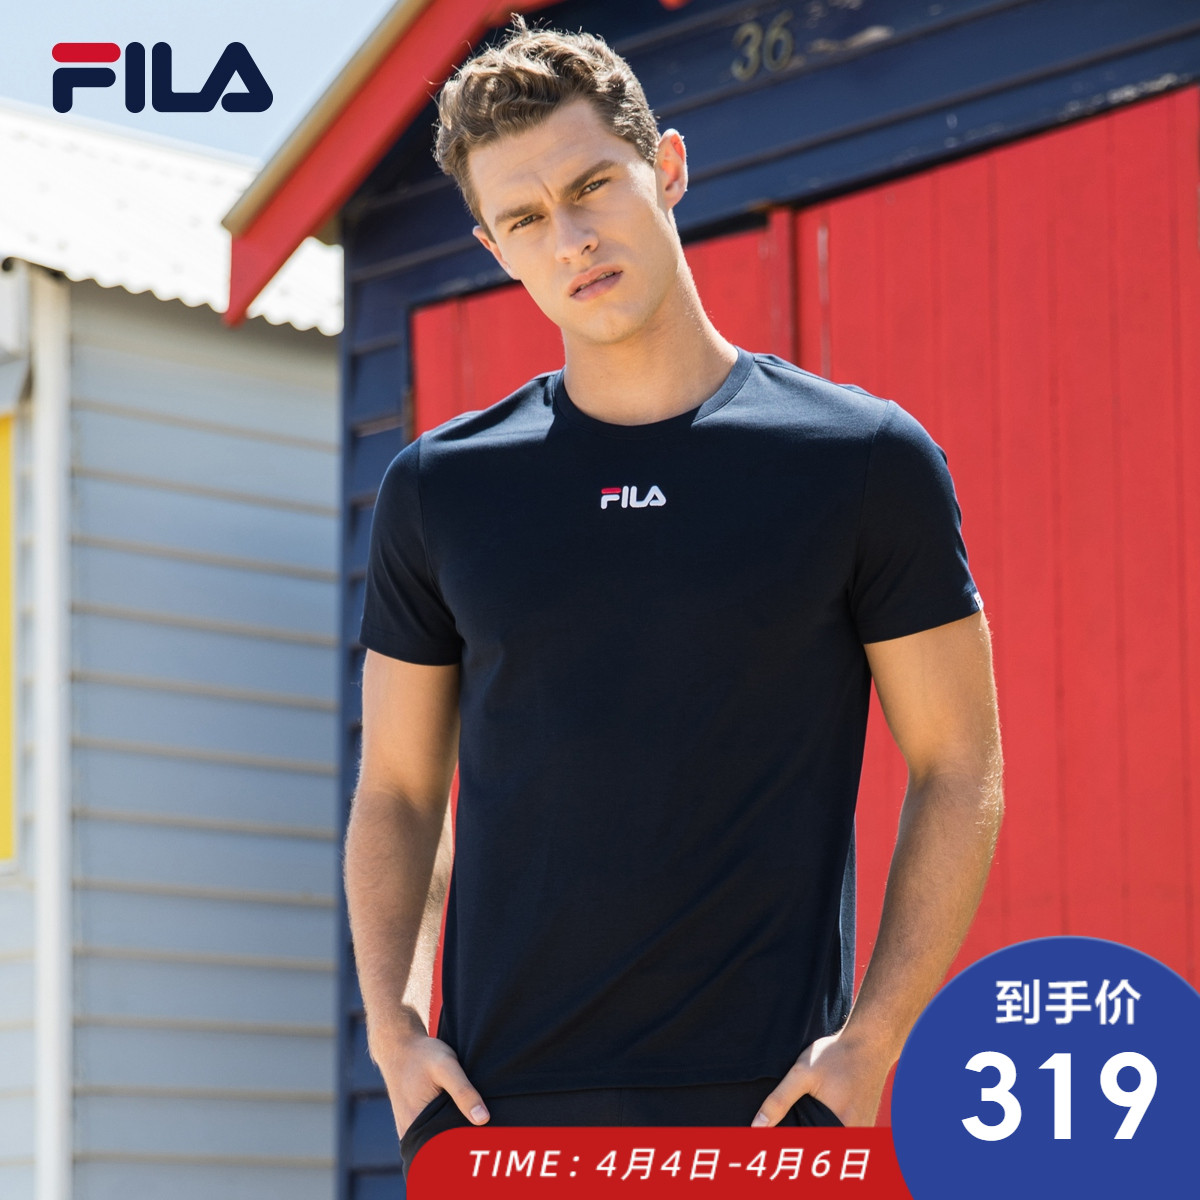 FILA FILA official short sleeve t-shirt men's spring and summer 2020 t-shirt men's and women's short sleeve loose sports T-shirt couple half sleeve